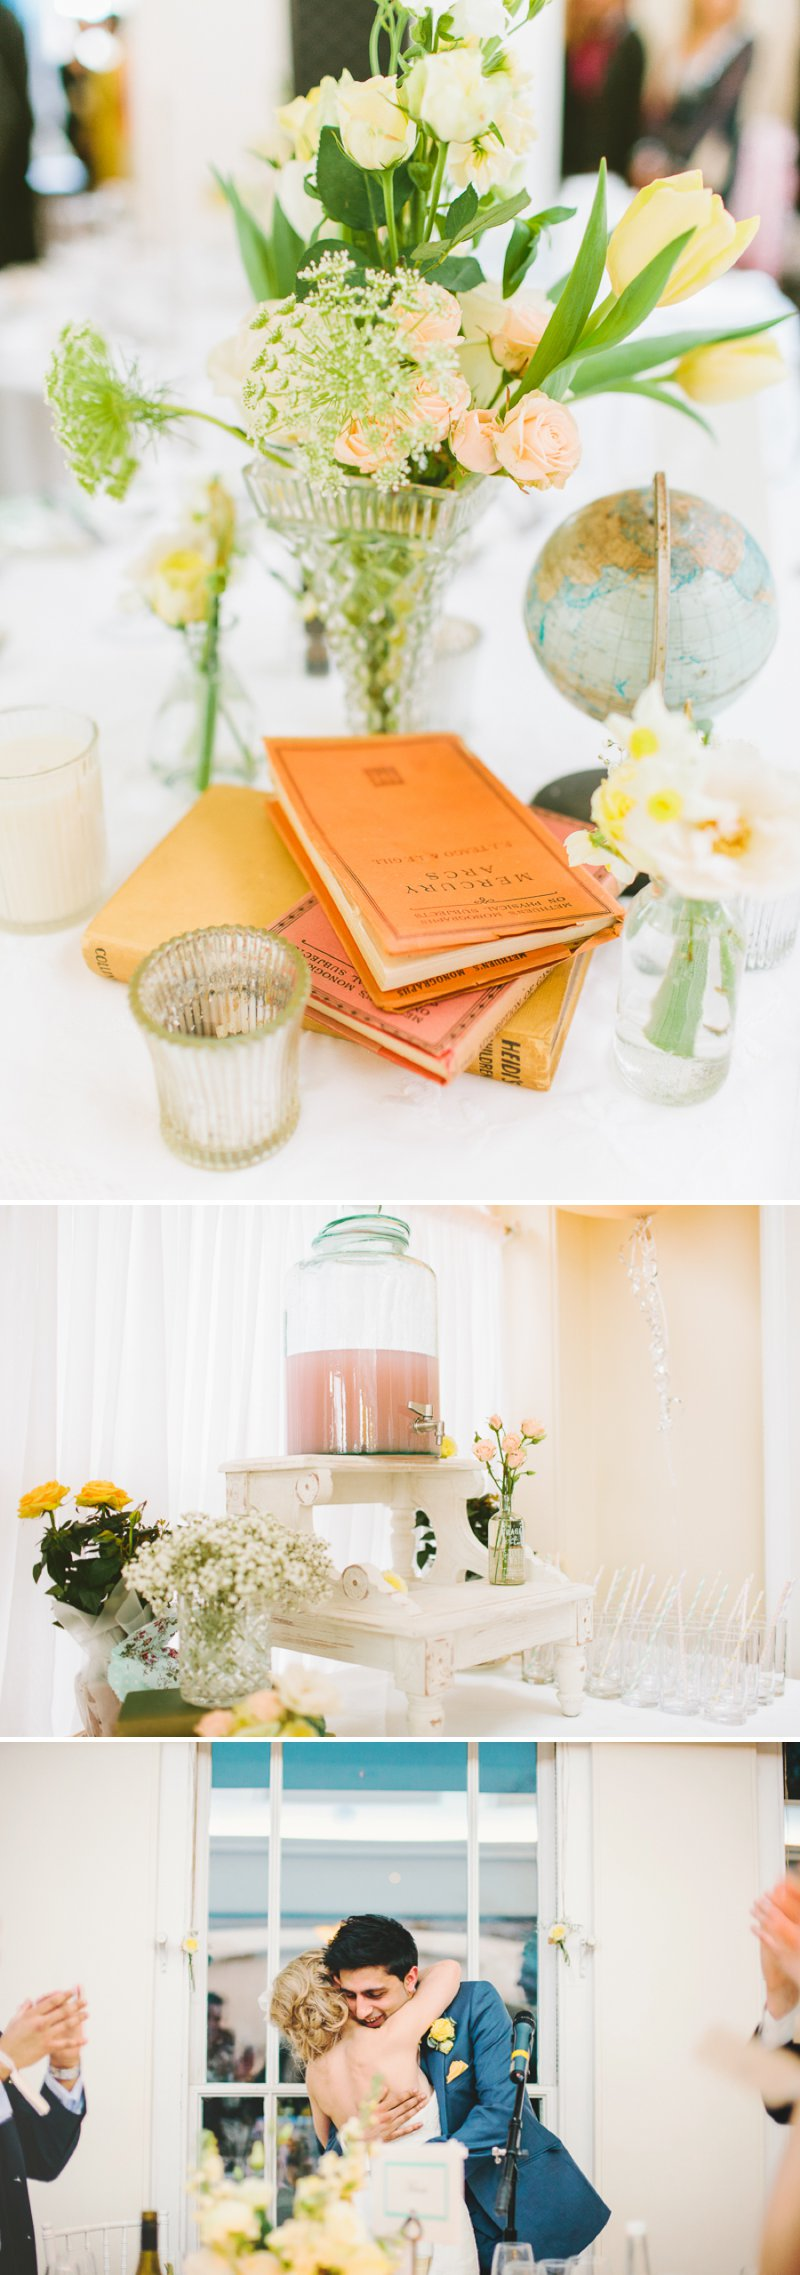 Yellow Themed Vintage Inspired Easter Wedding At Pembroke Lodge Richmond Park With Bride In Balira By Pronovias And Burberry Sandals With Groom In Blue Reiss Suit And Bridesmaids In Yellow Vintage Dresses With Images By Shell De Mar 9